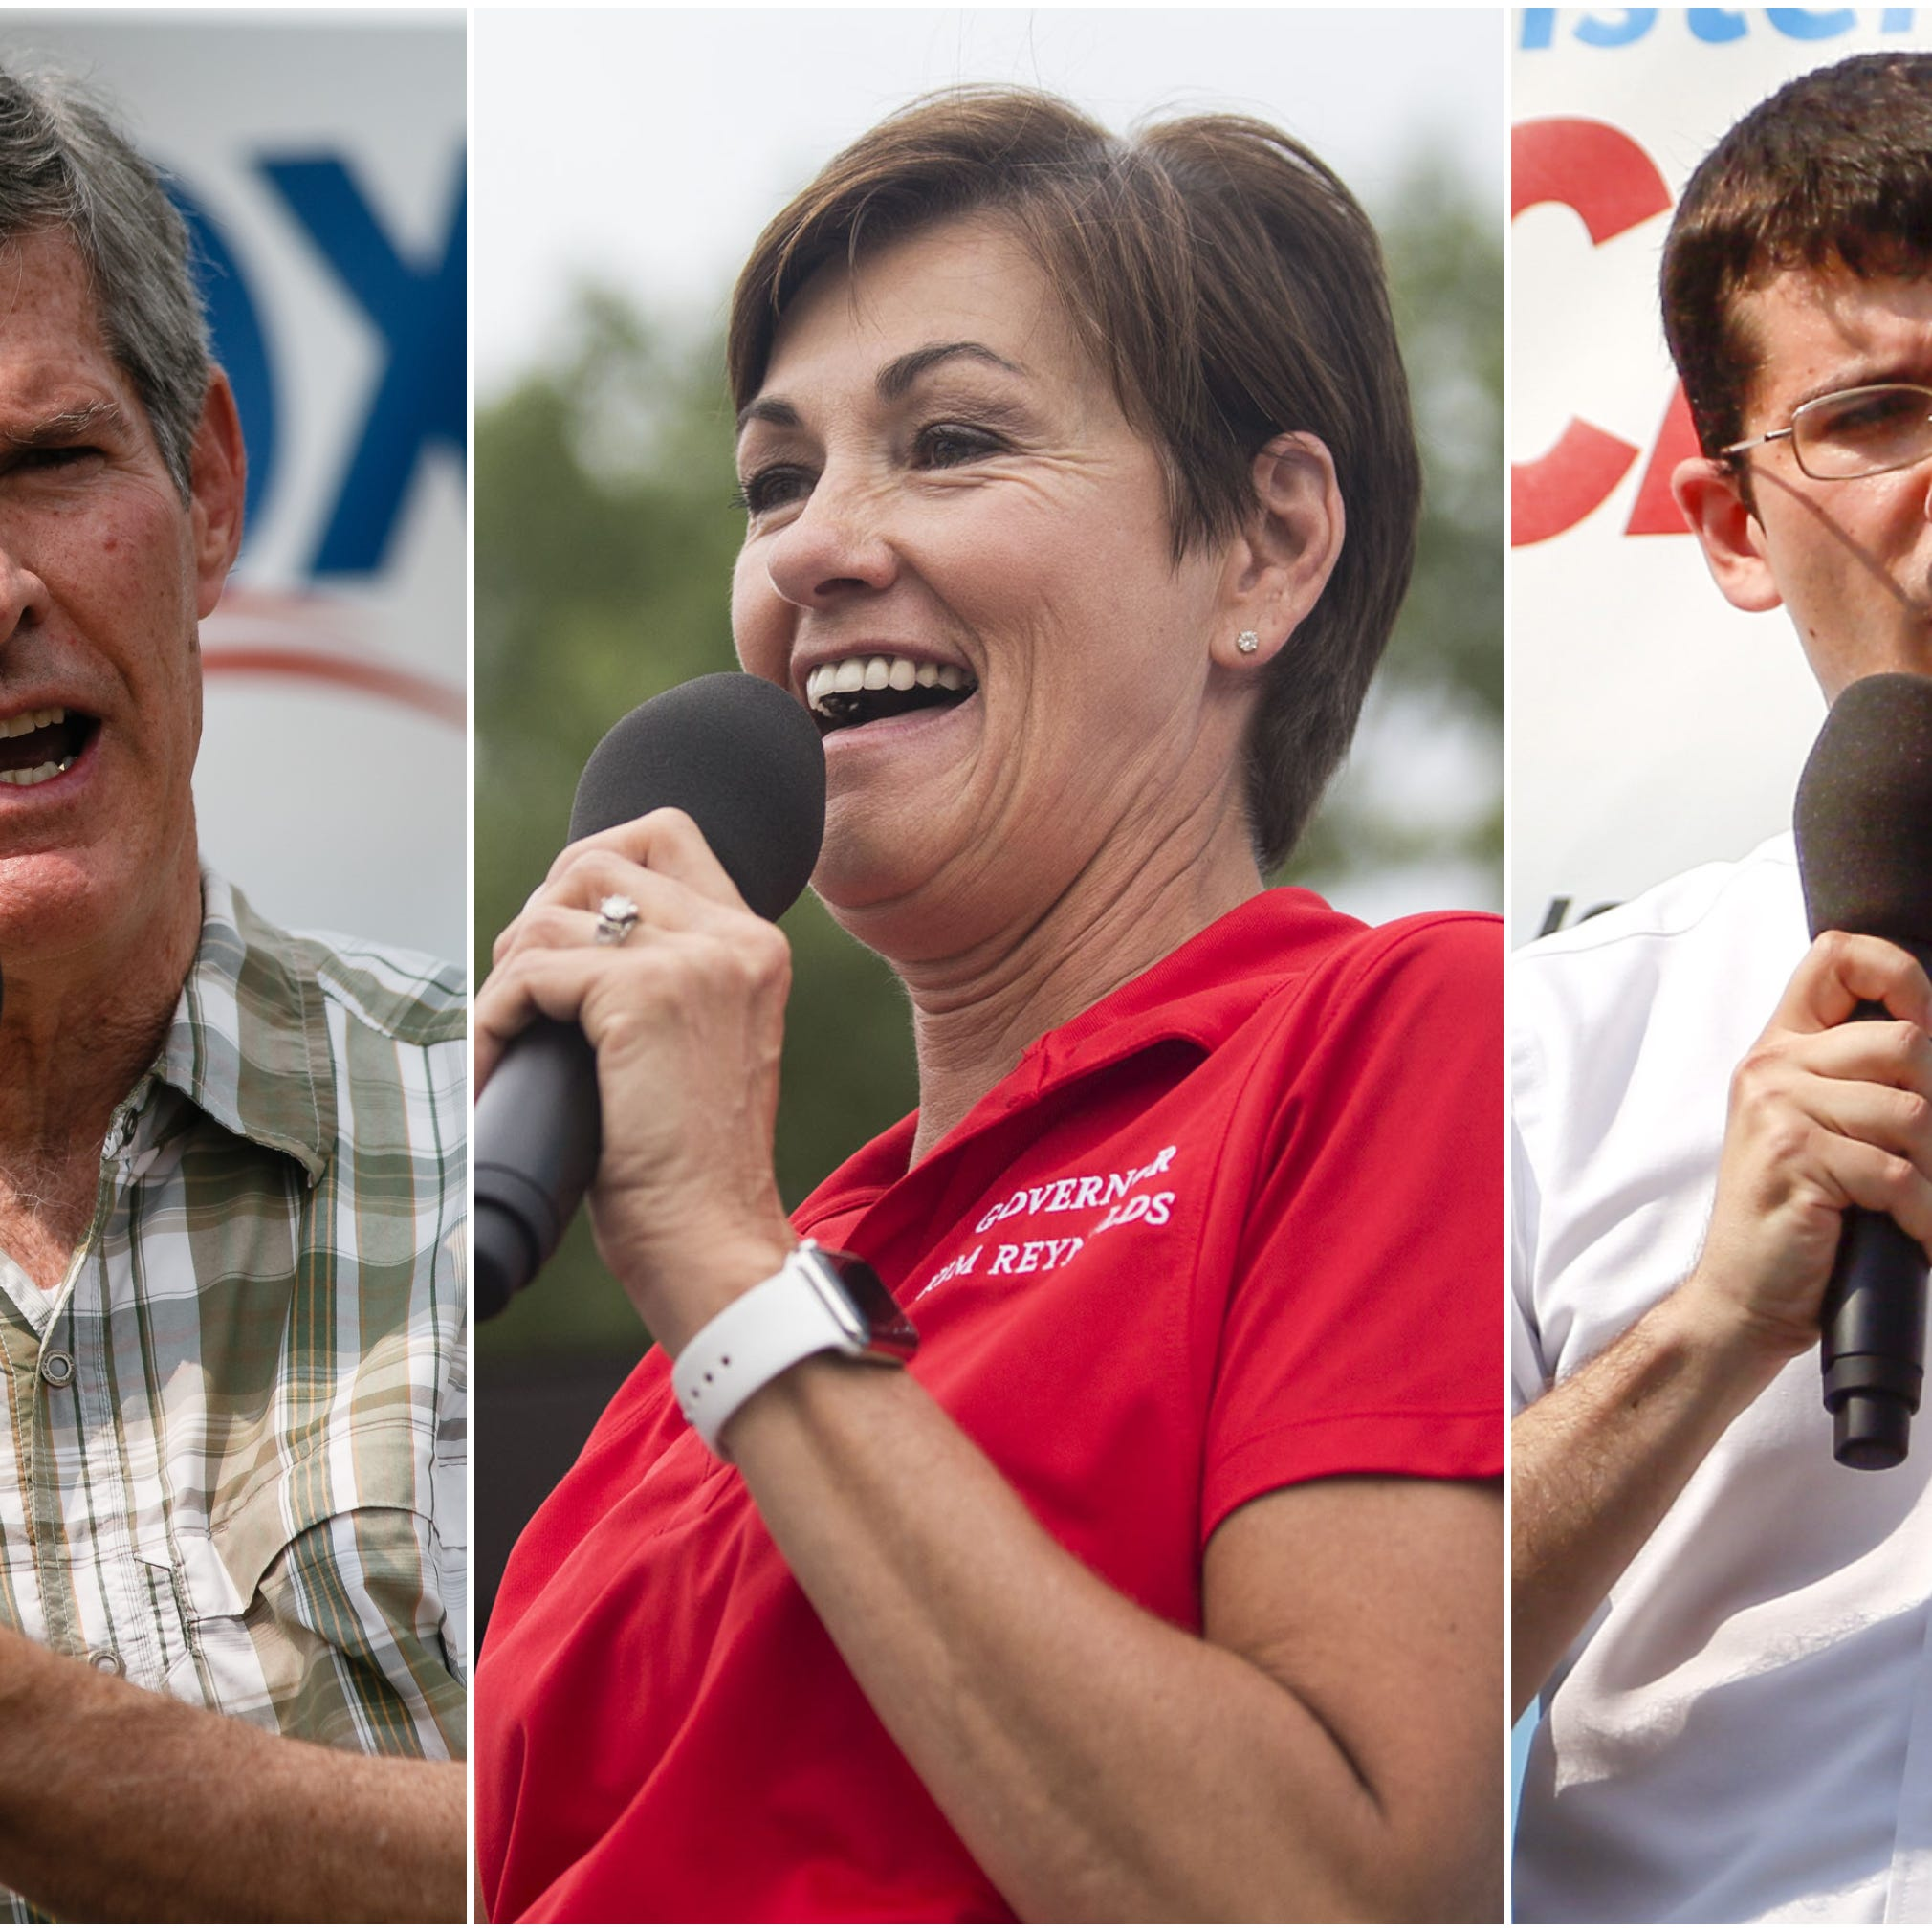 Fueled in part by his own contributions, Democrat Hubbell outraises Republican Reynolds in governor's race